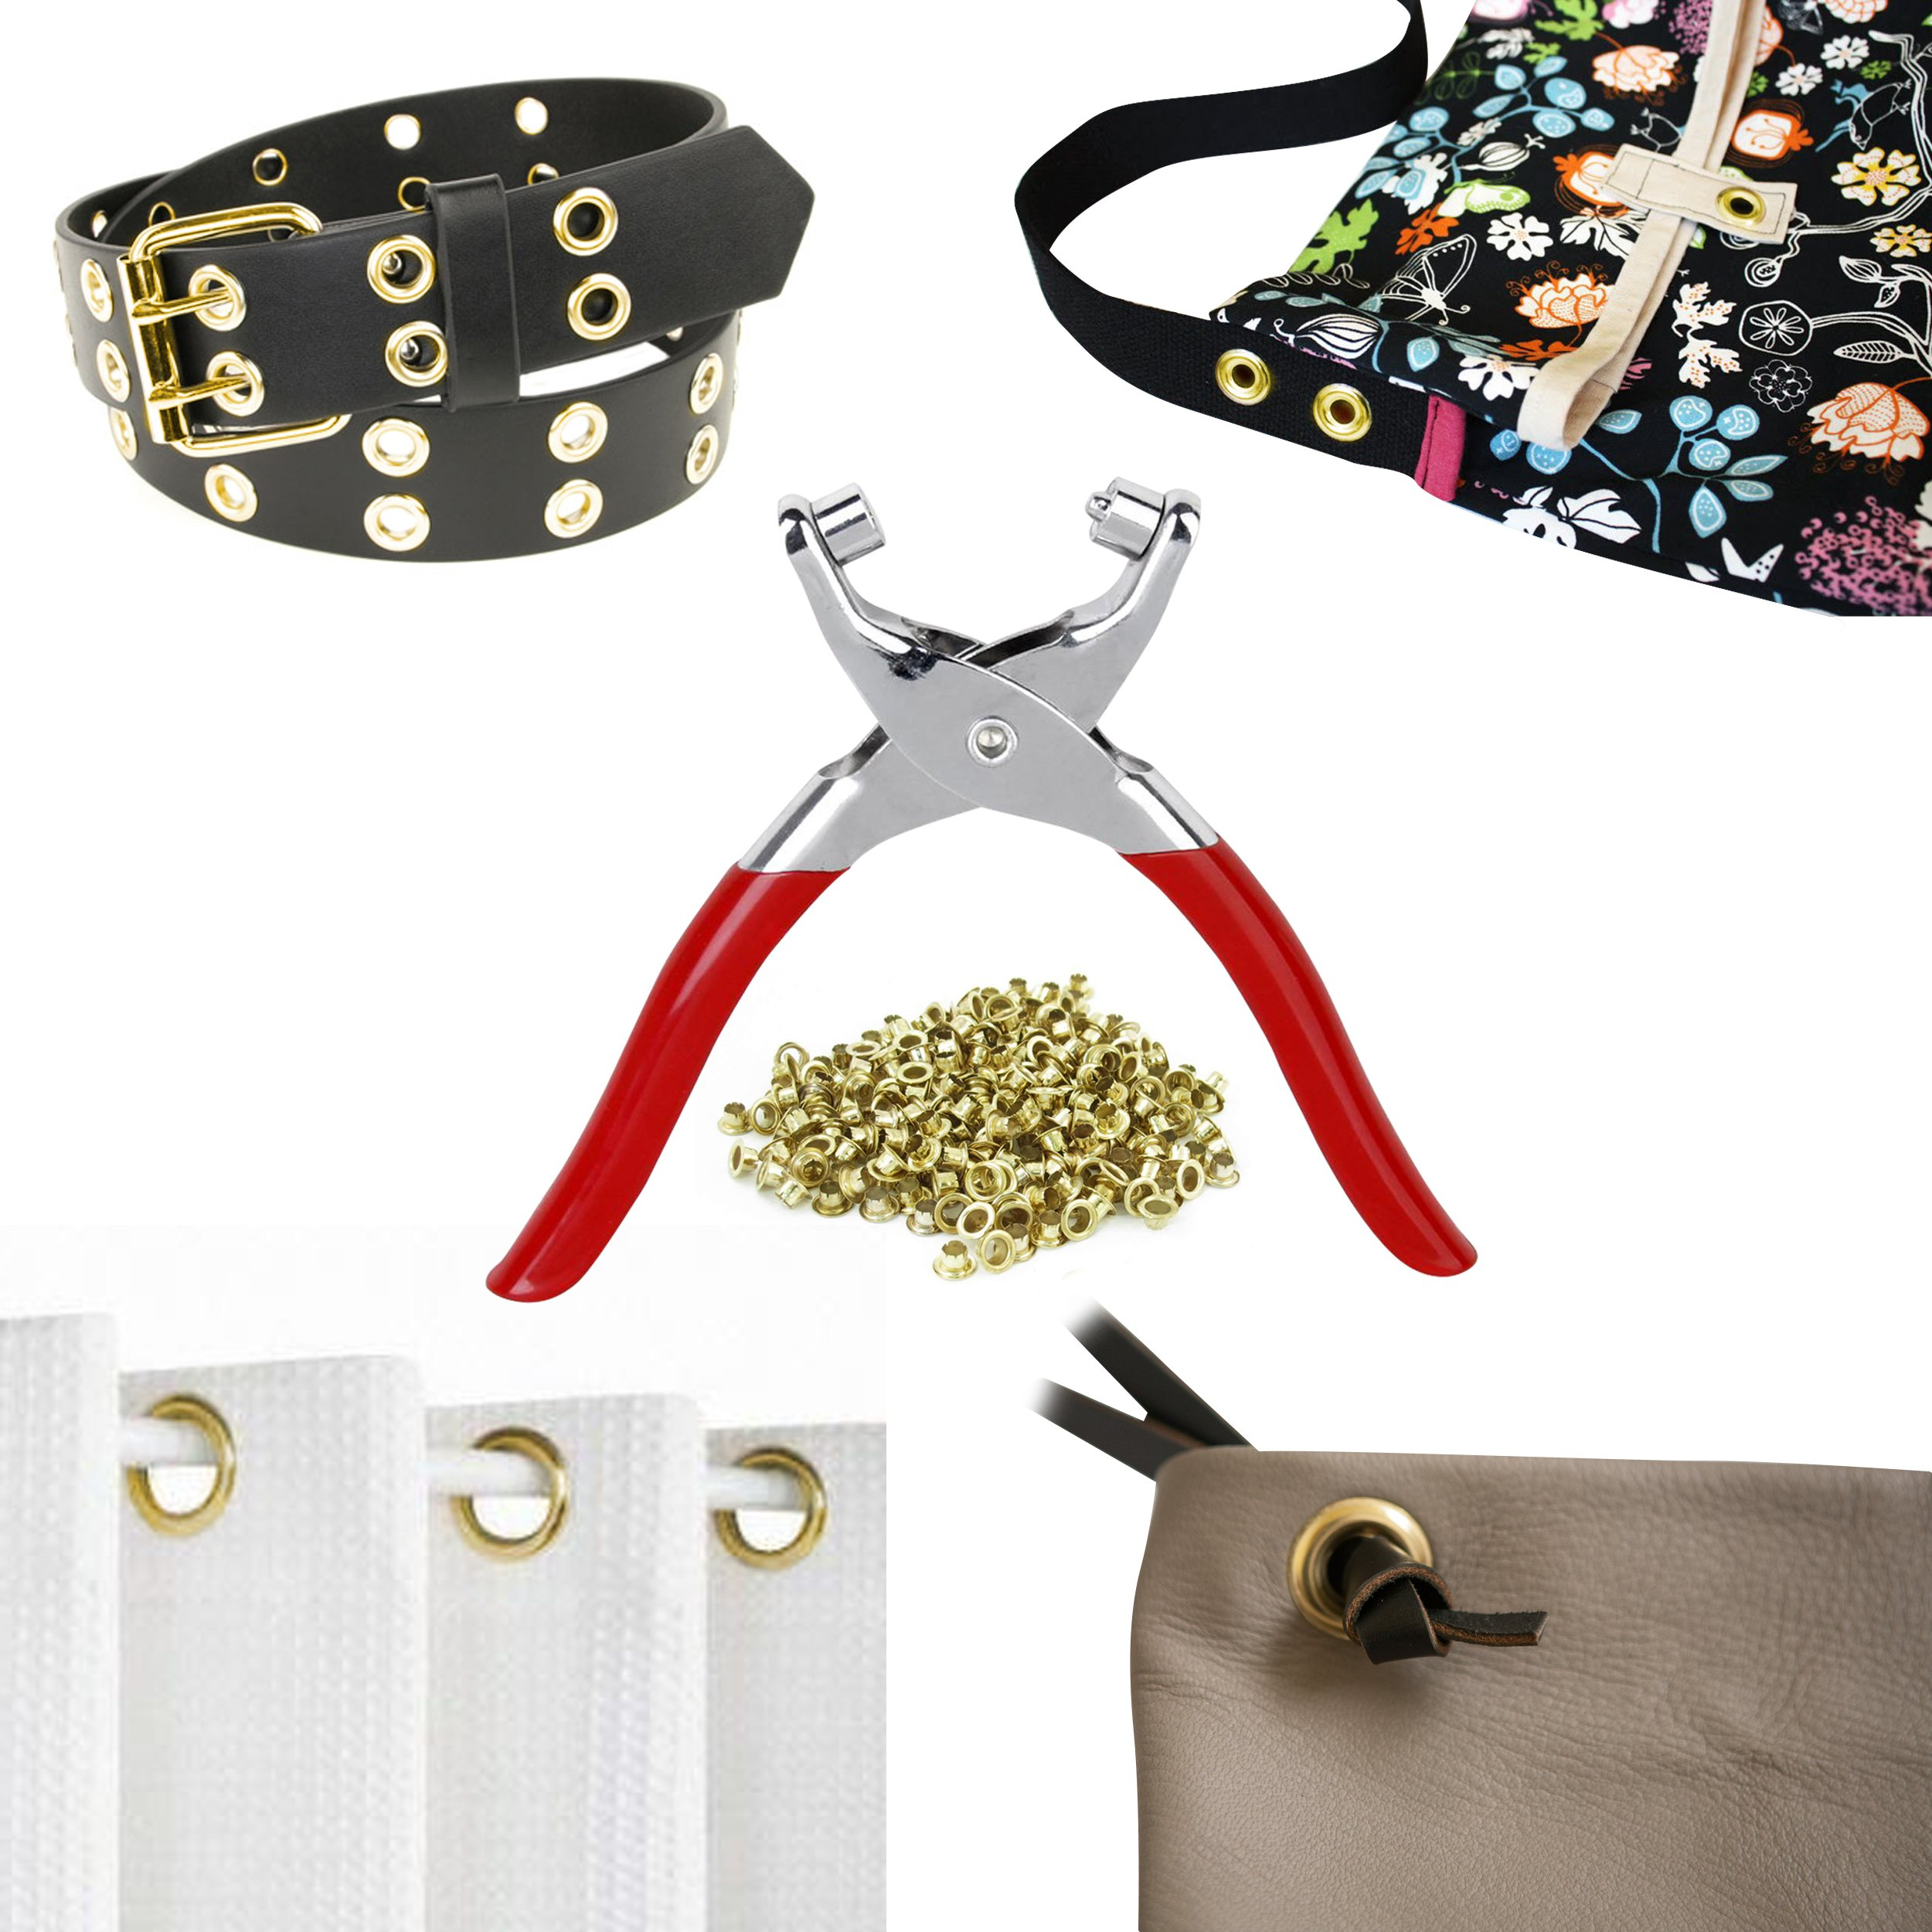 CraftEase Eyelet Grommet Kit Pliers for Fabric and Leather